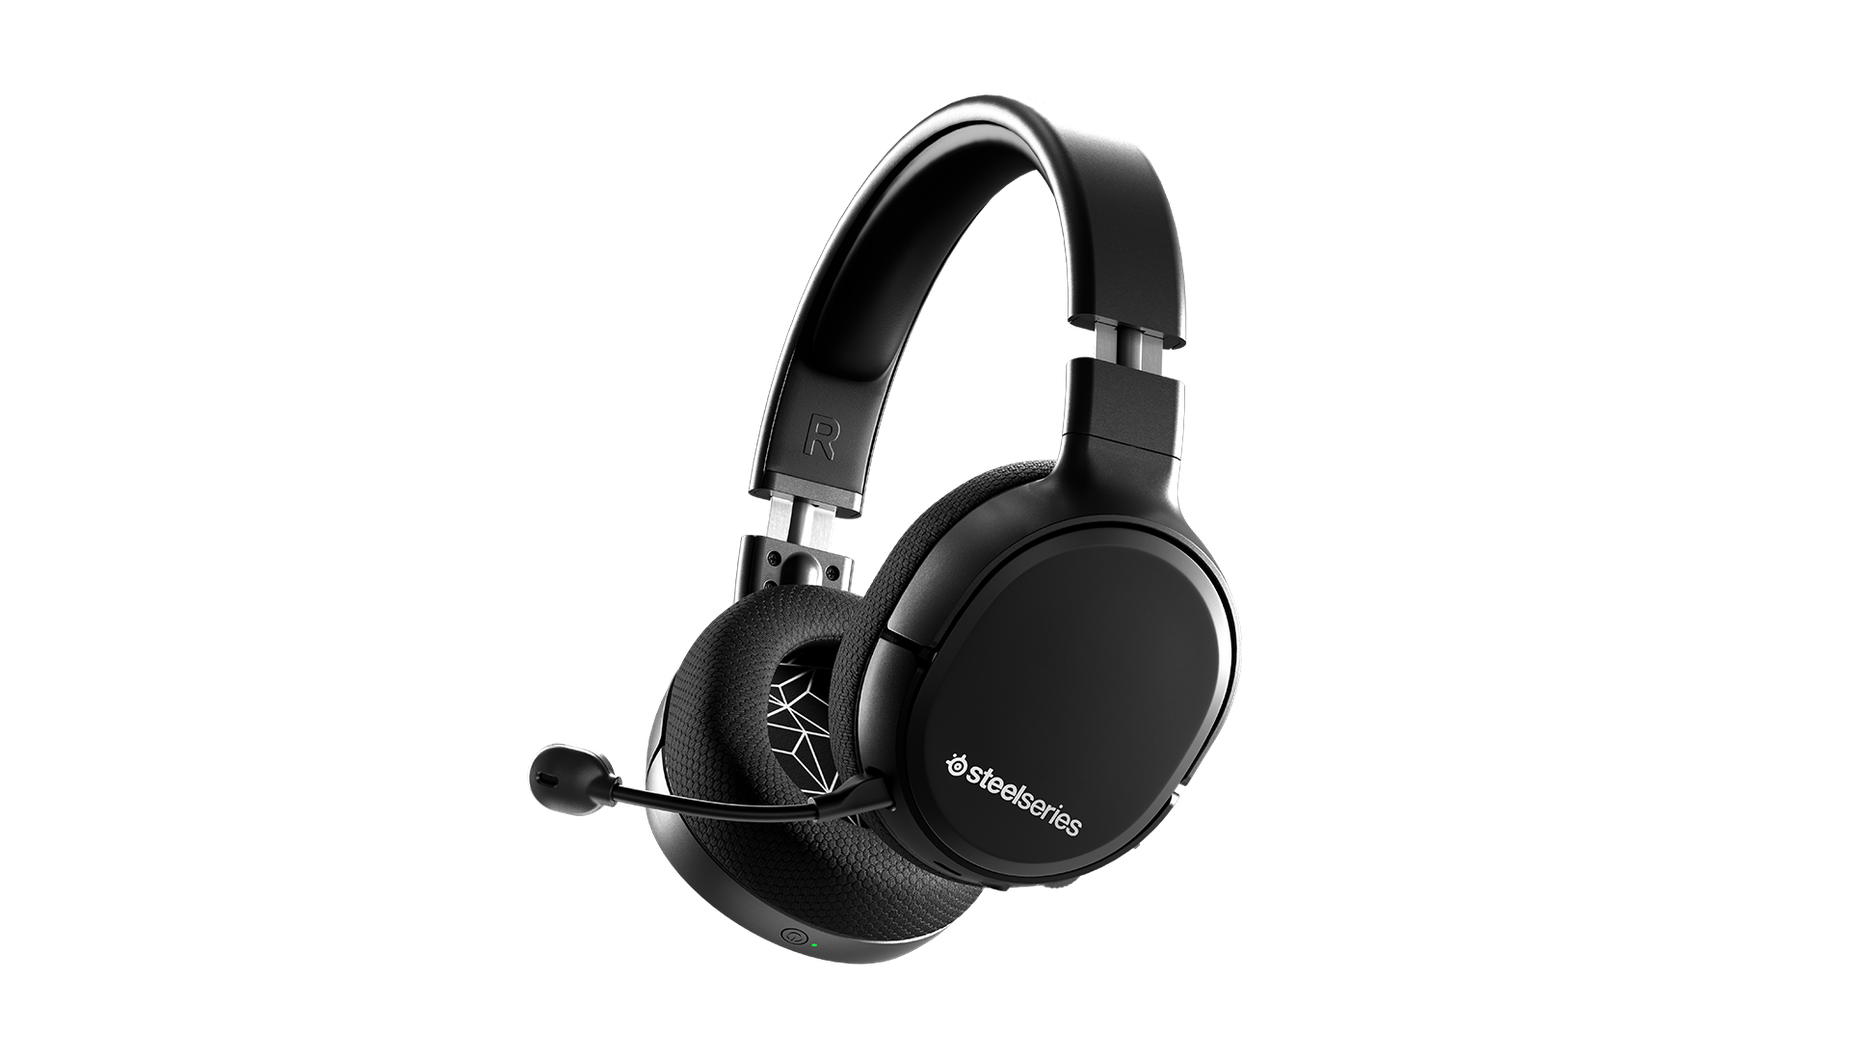 Arctis 1 Wireless gaming headset angled with microphone attached.